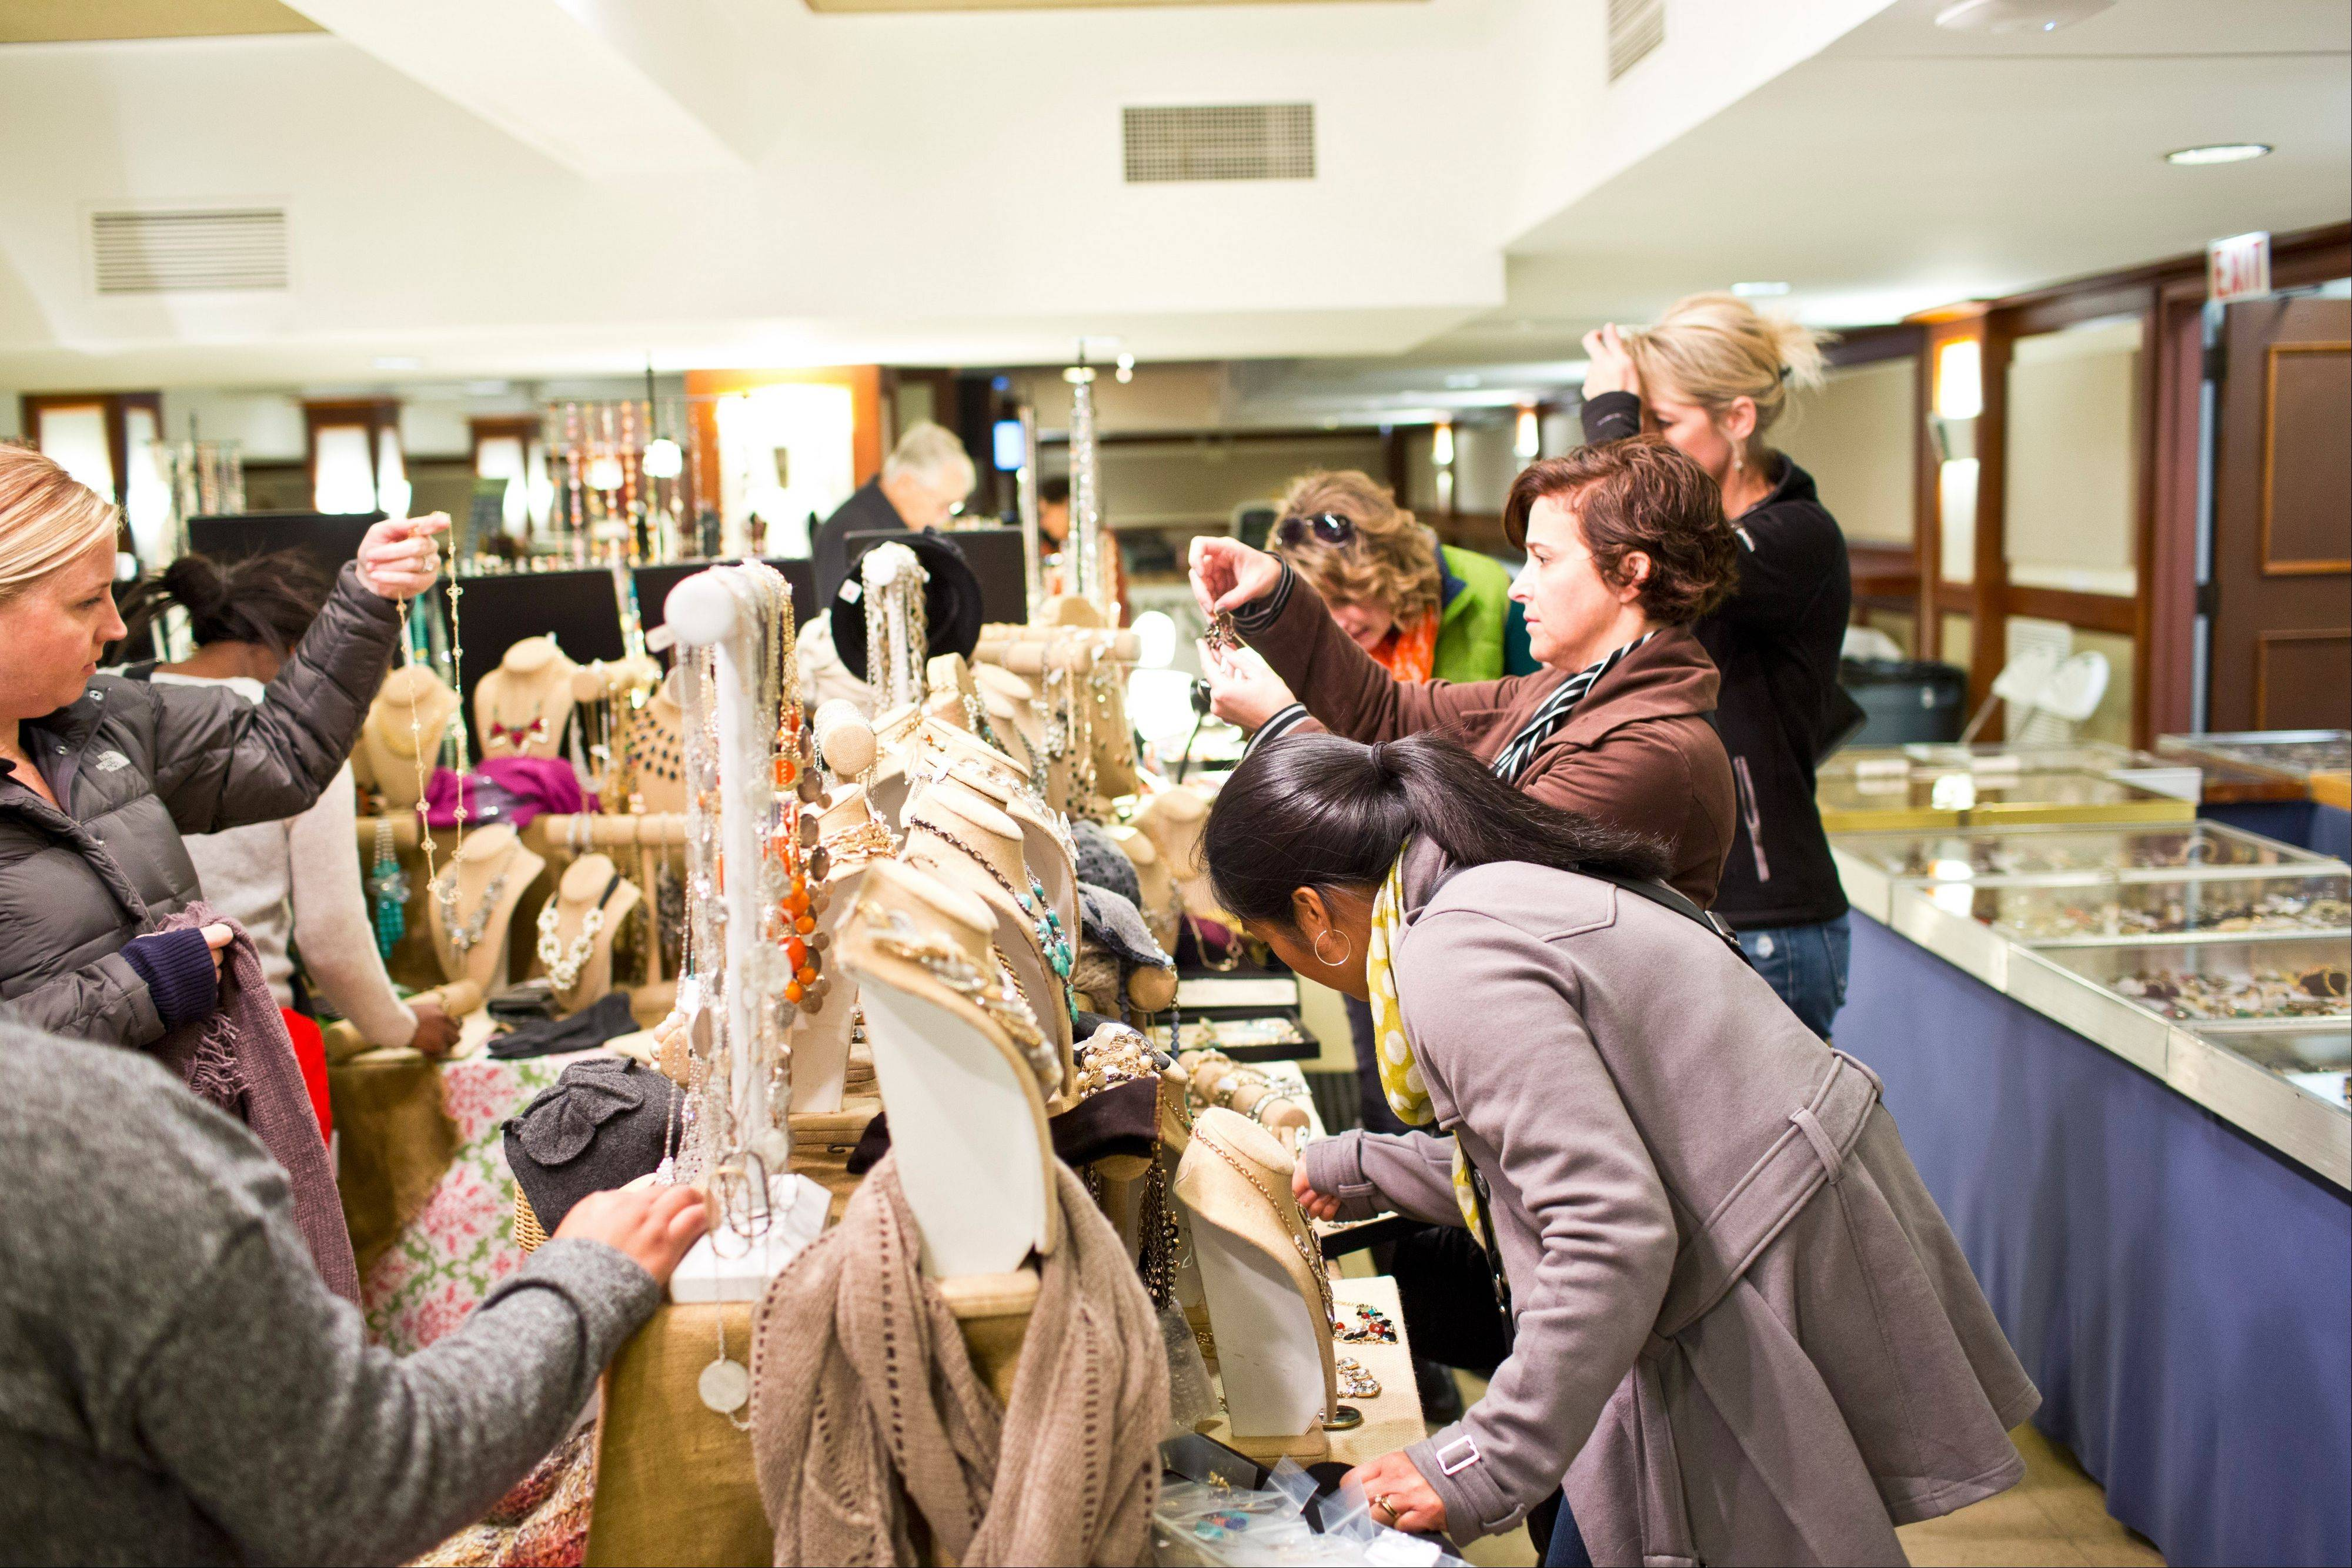 Randolph Street Market's 7th Annual Holiday Market offers gift possibilities that you cannot get anywhere else, plus activities for kids and gourmet food.